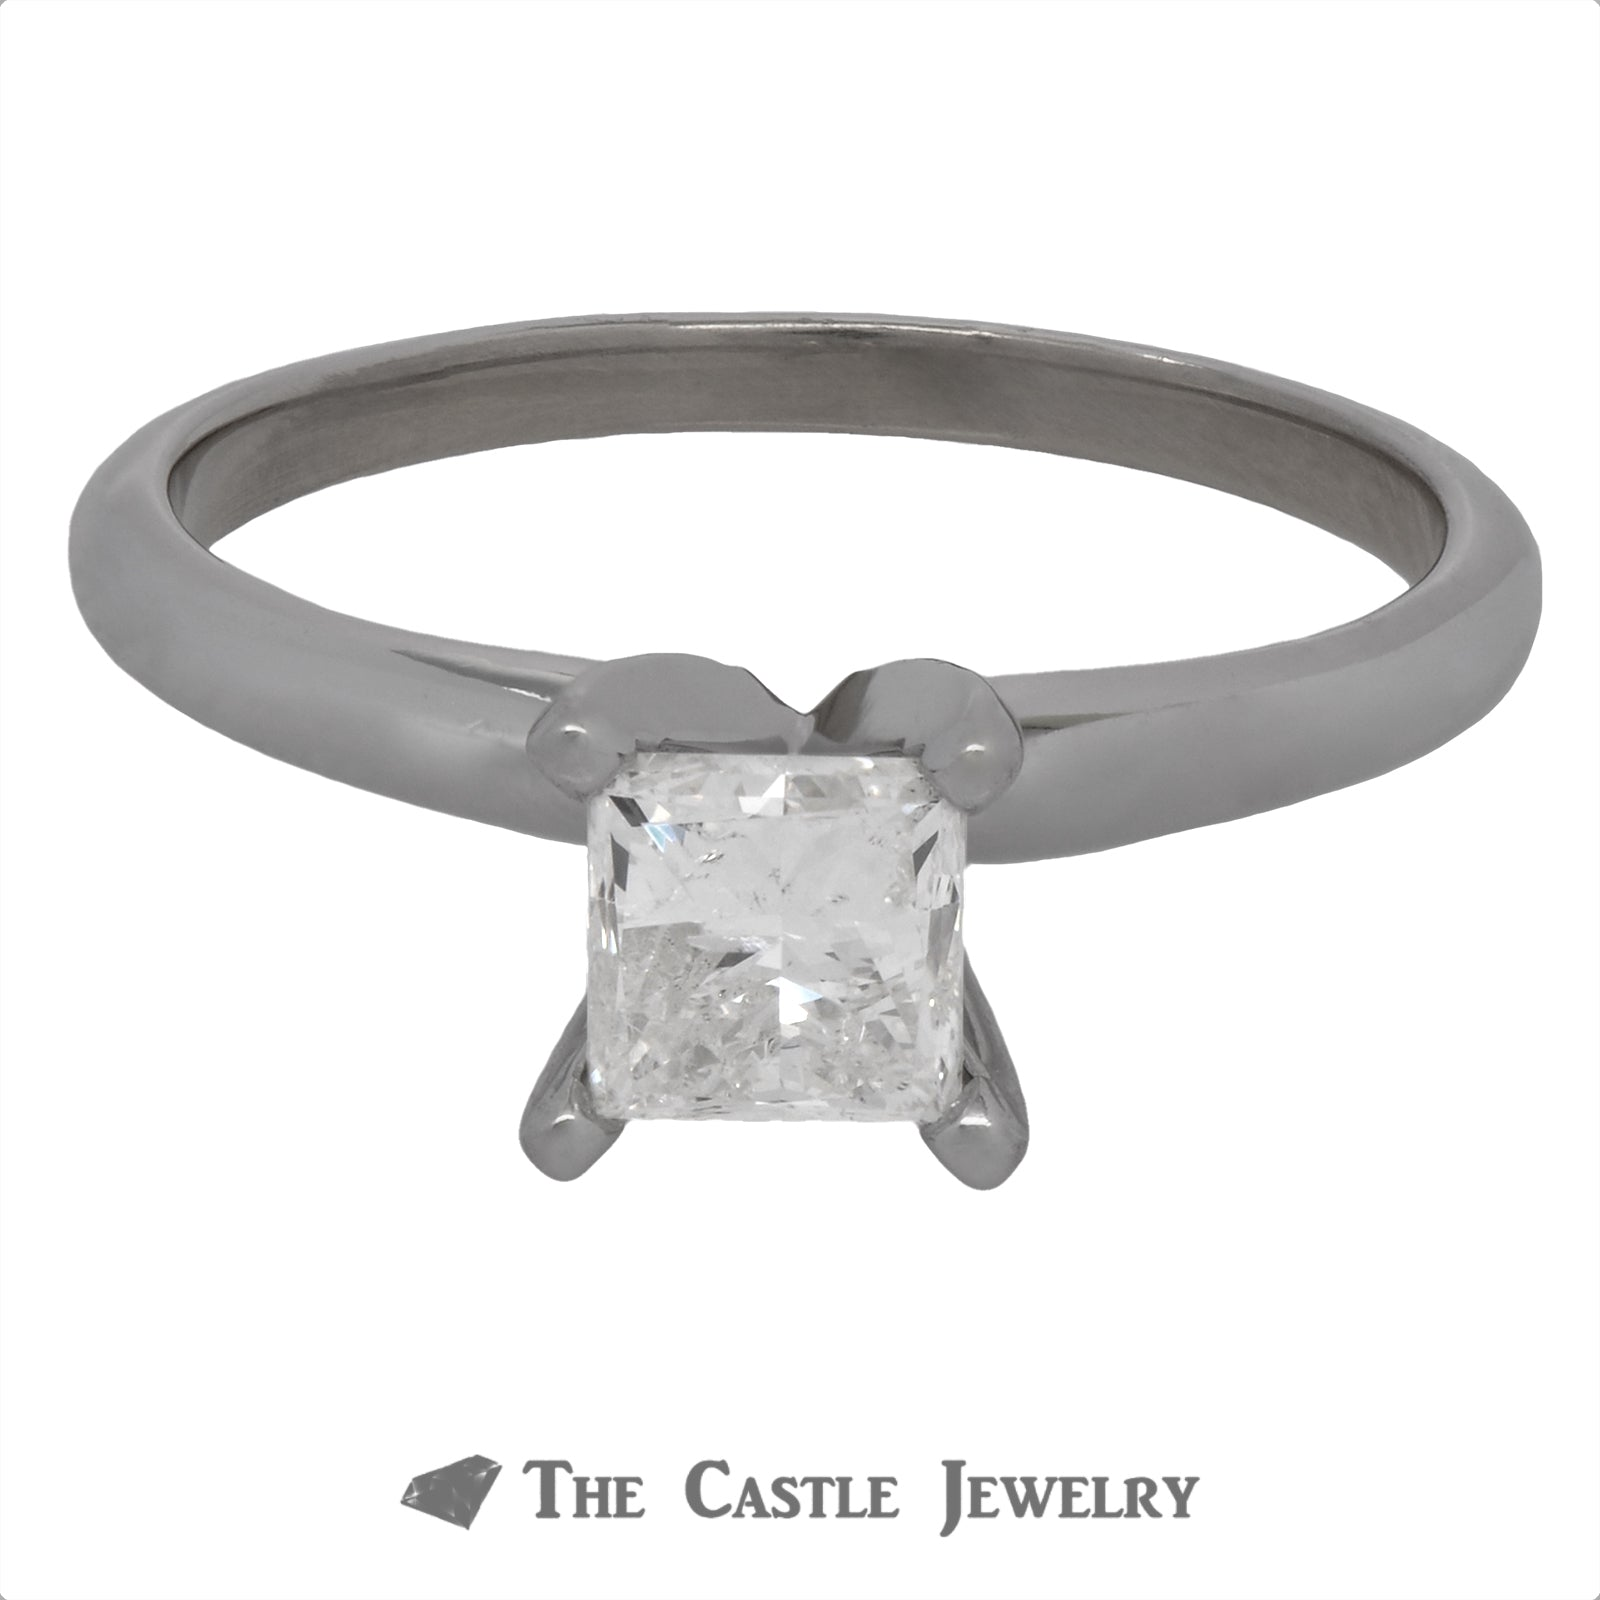 Princess Cut Diamond Engagement Ring Crafted in 14K White Gold